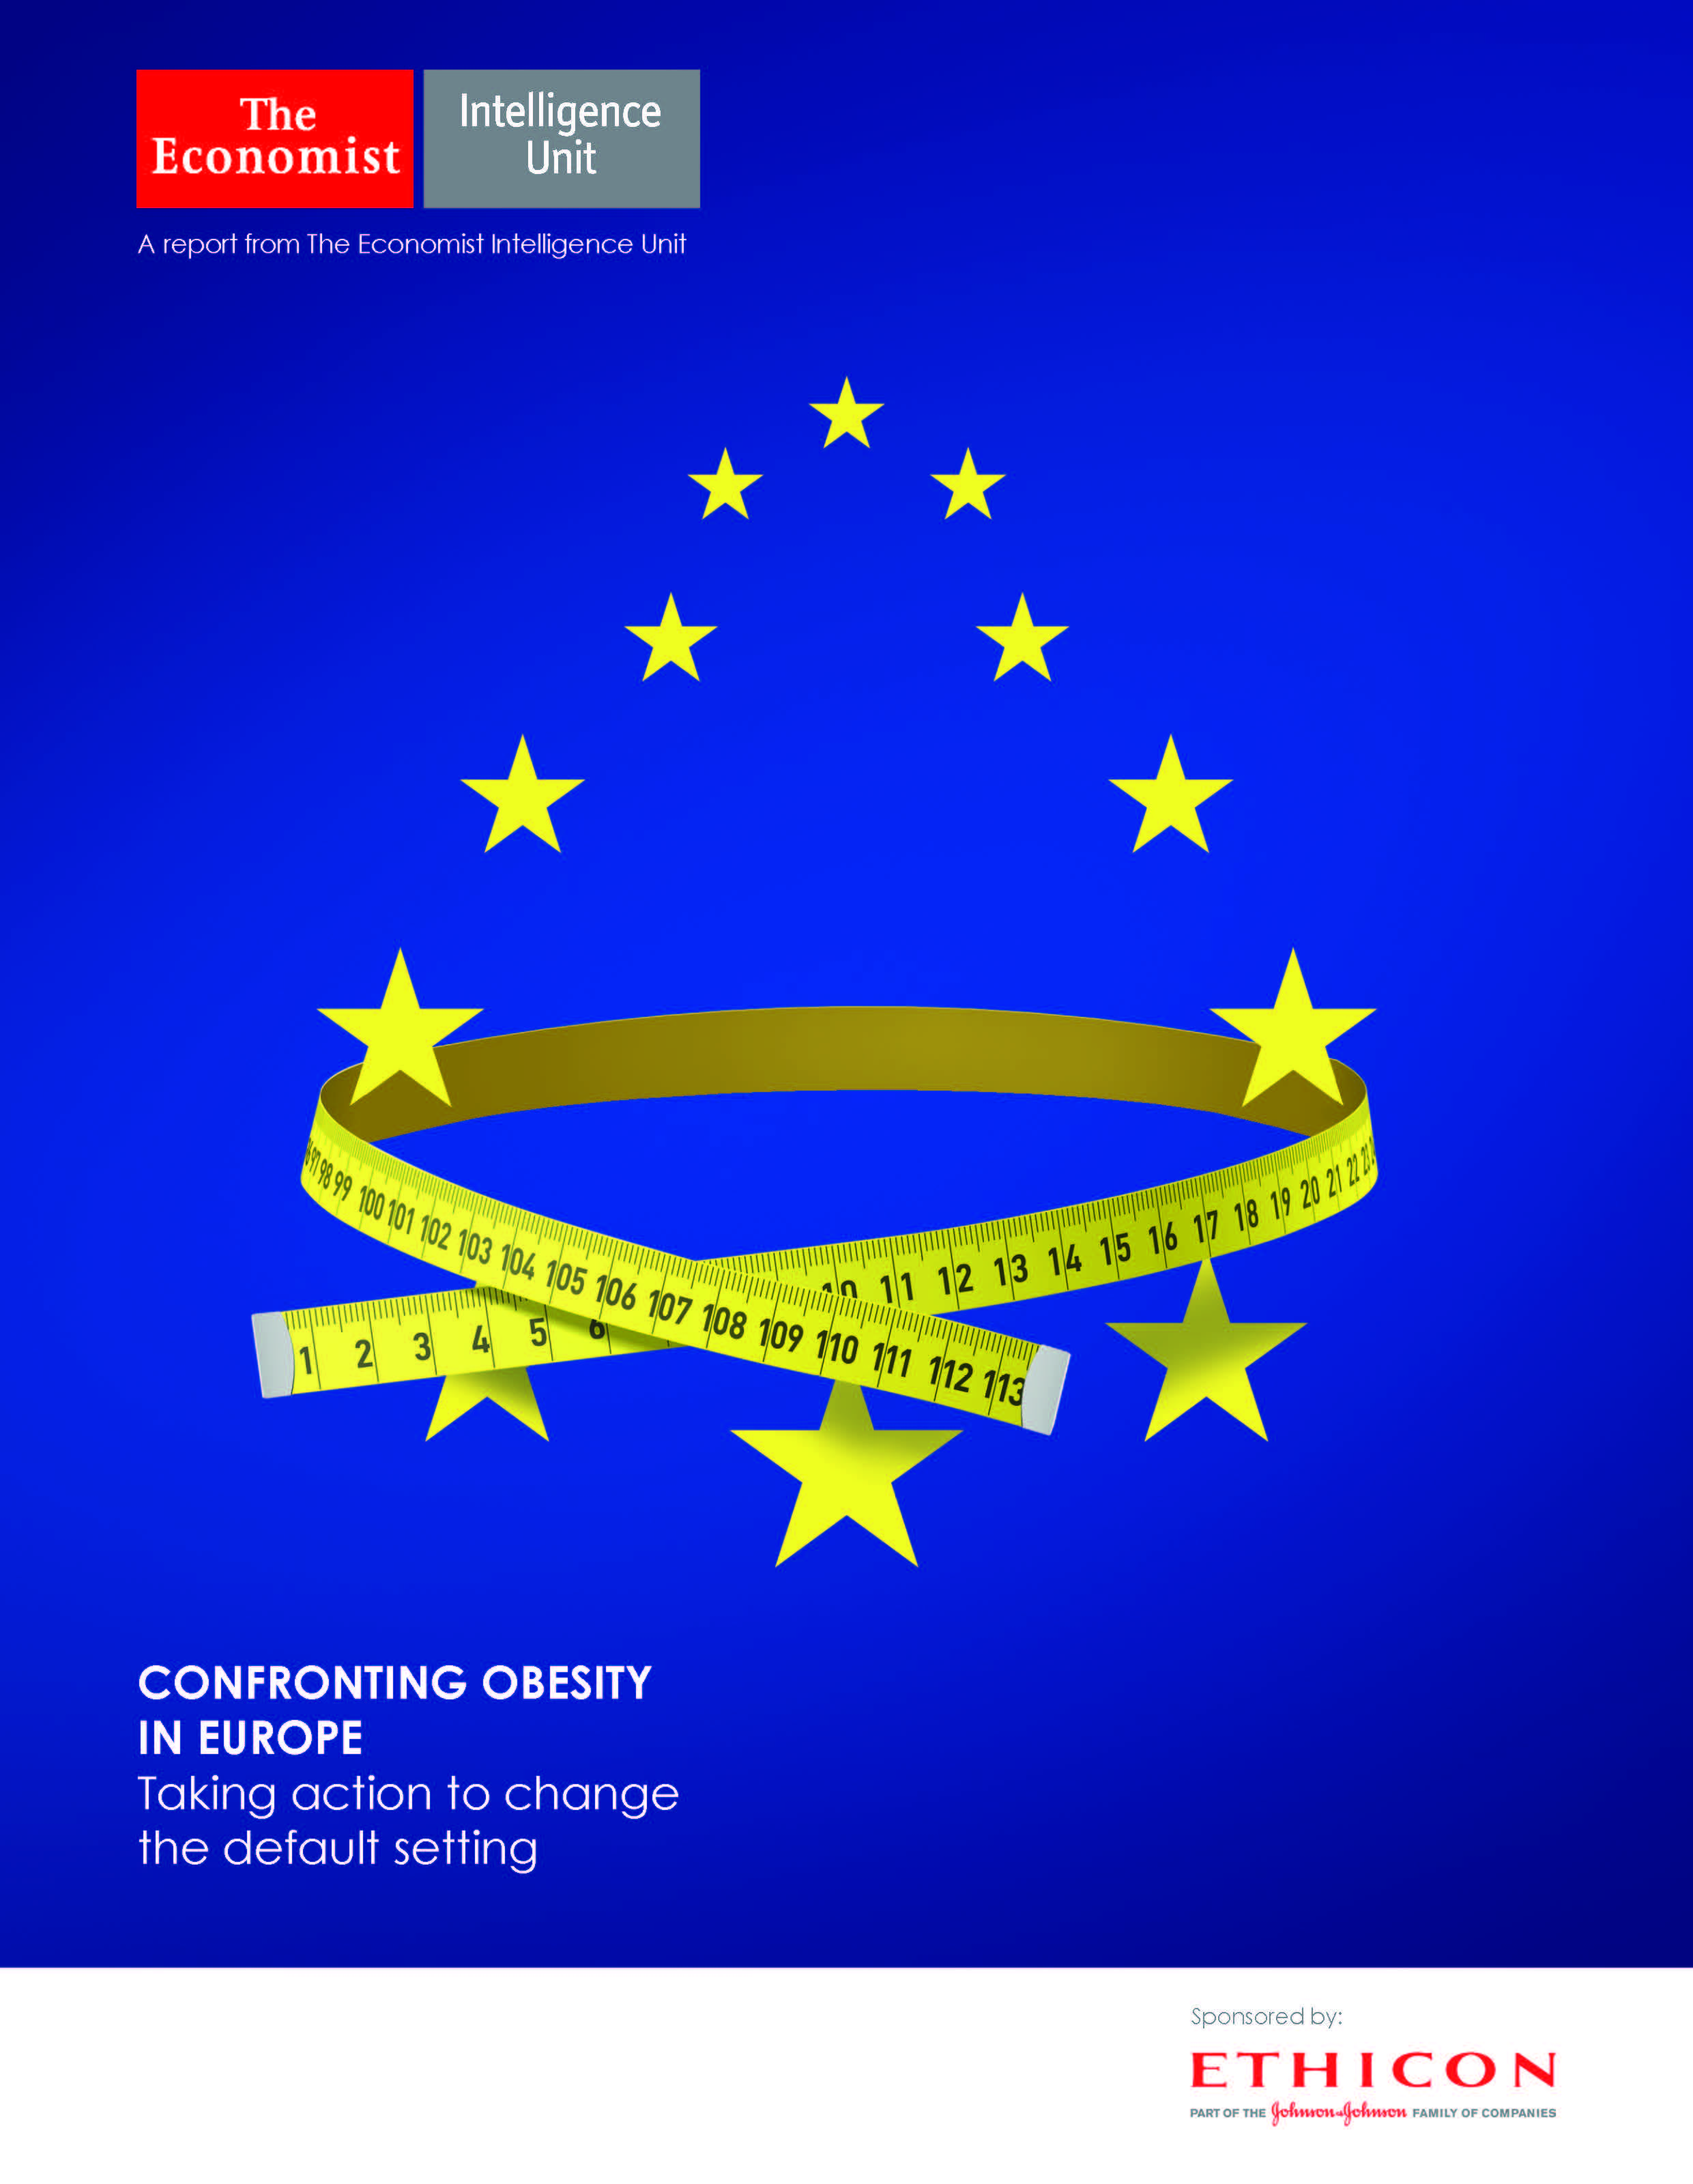 Report: Confronting obesity in Europe: Taking action to change the default setting